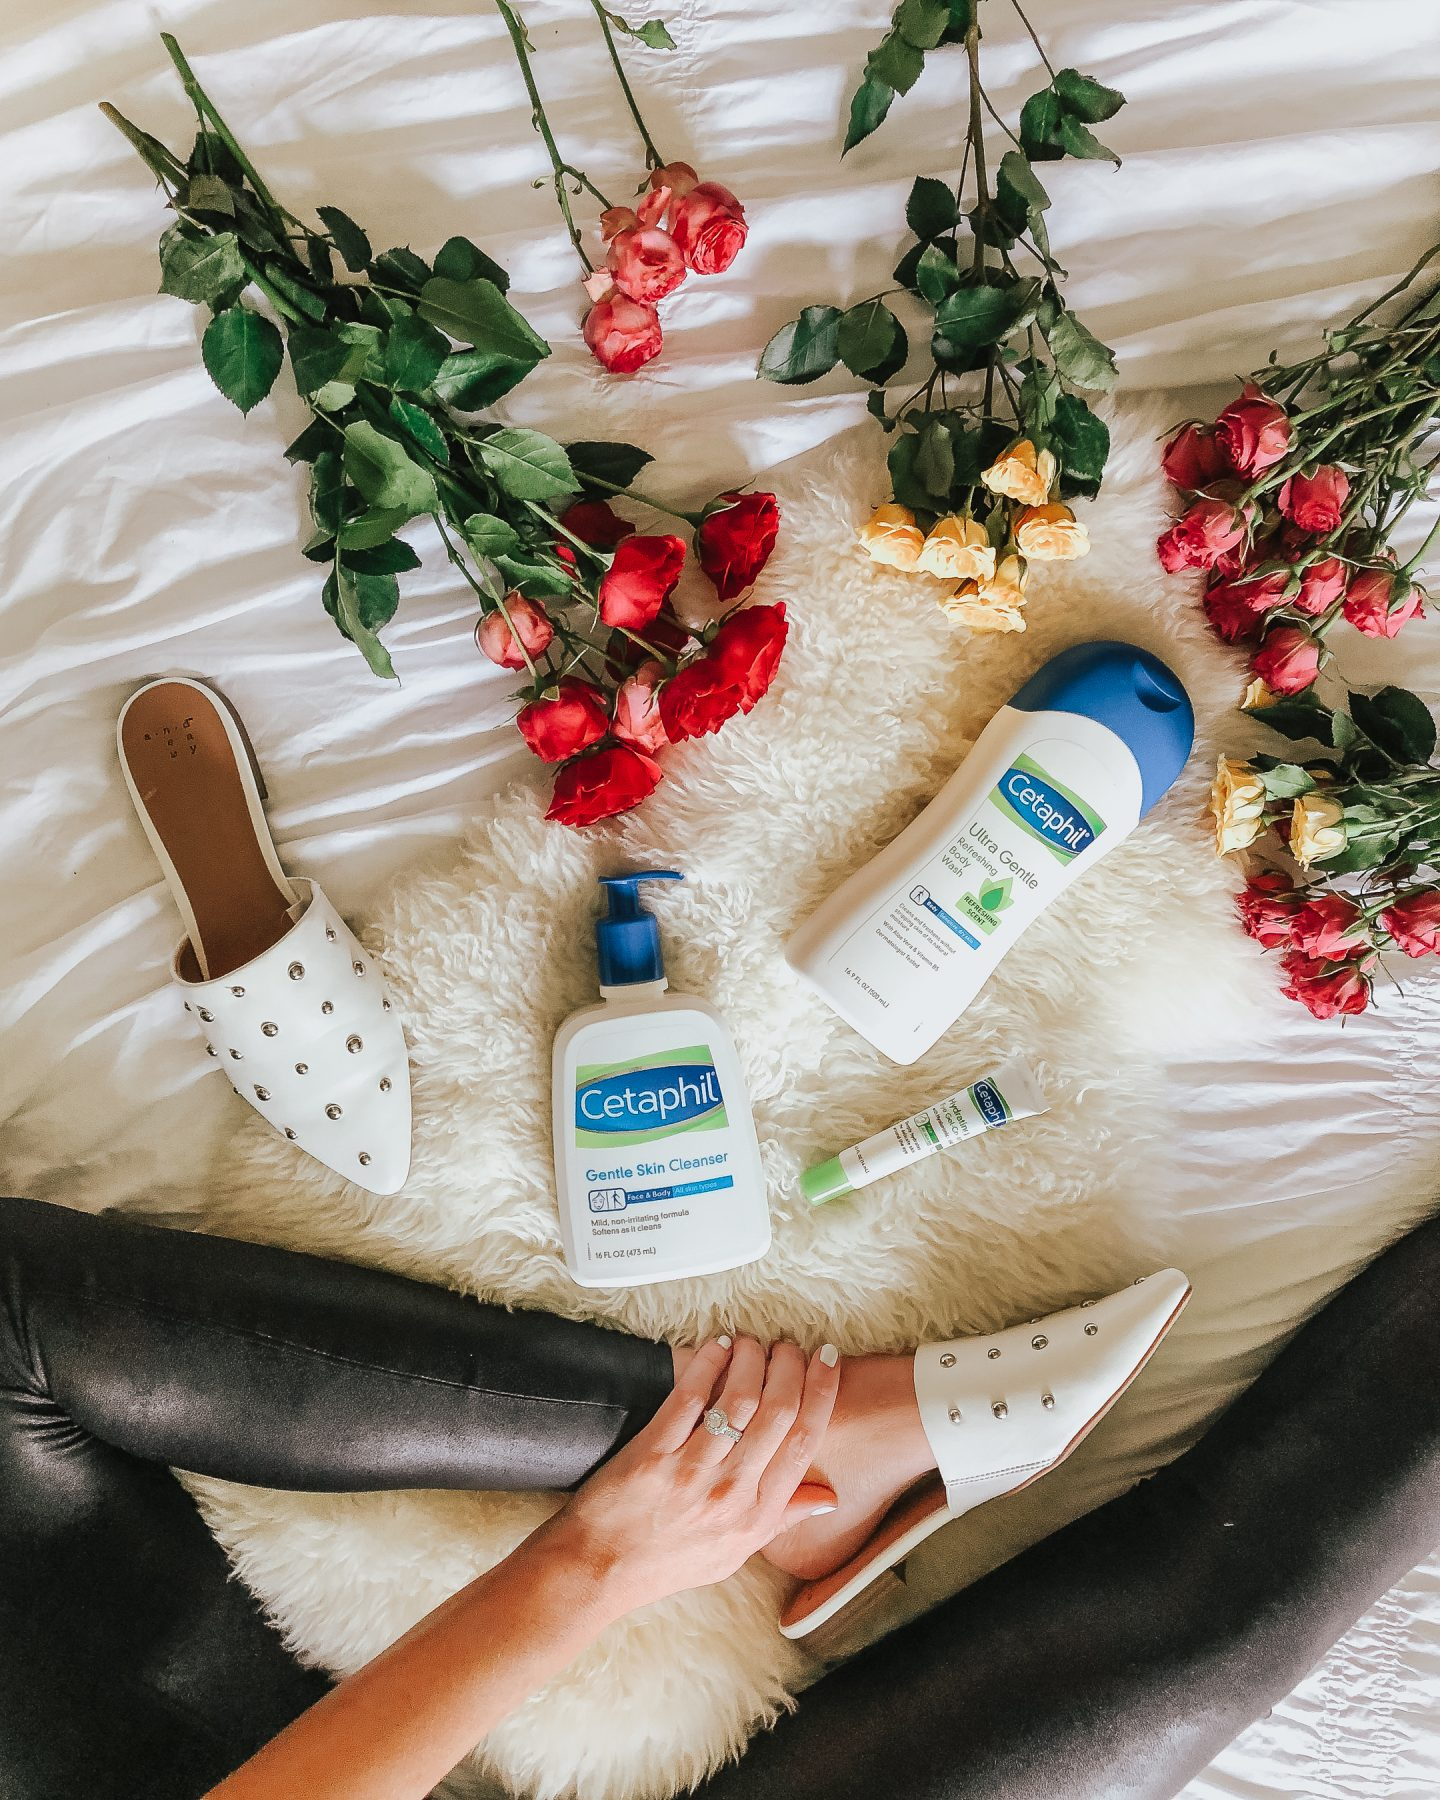 cetaphil self care, holy grailcetaphil self care, holy grail skin care product that I cannot live without, anti aging skincare, skincare for the whole familyskin care product that I cannot live without, anti aging skincare, skincare for the whole family